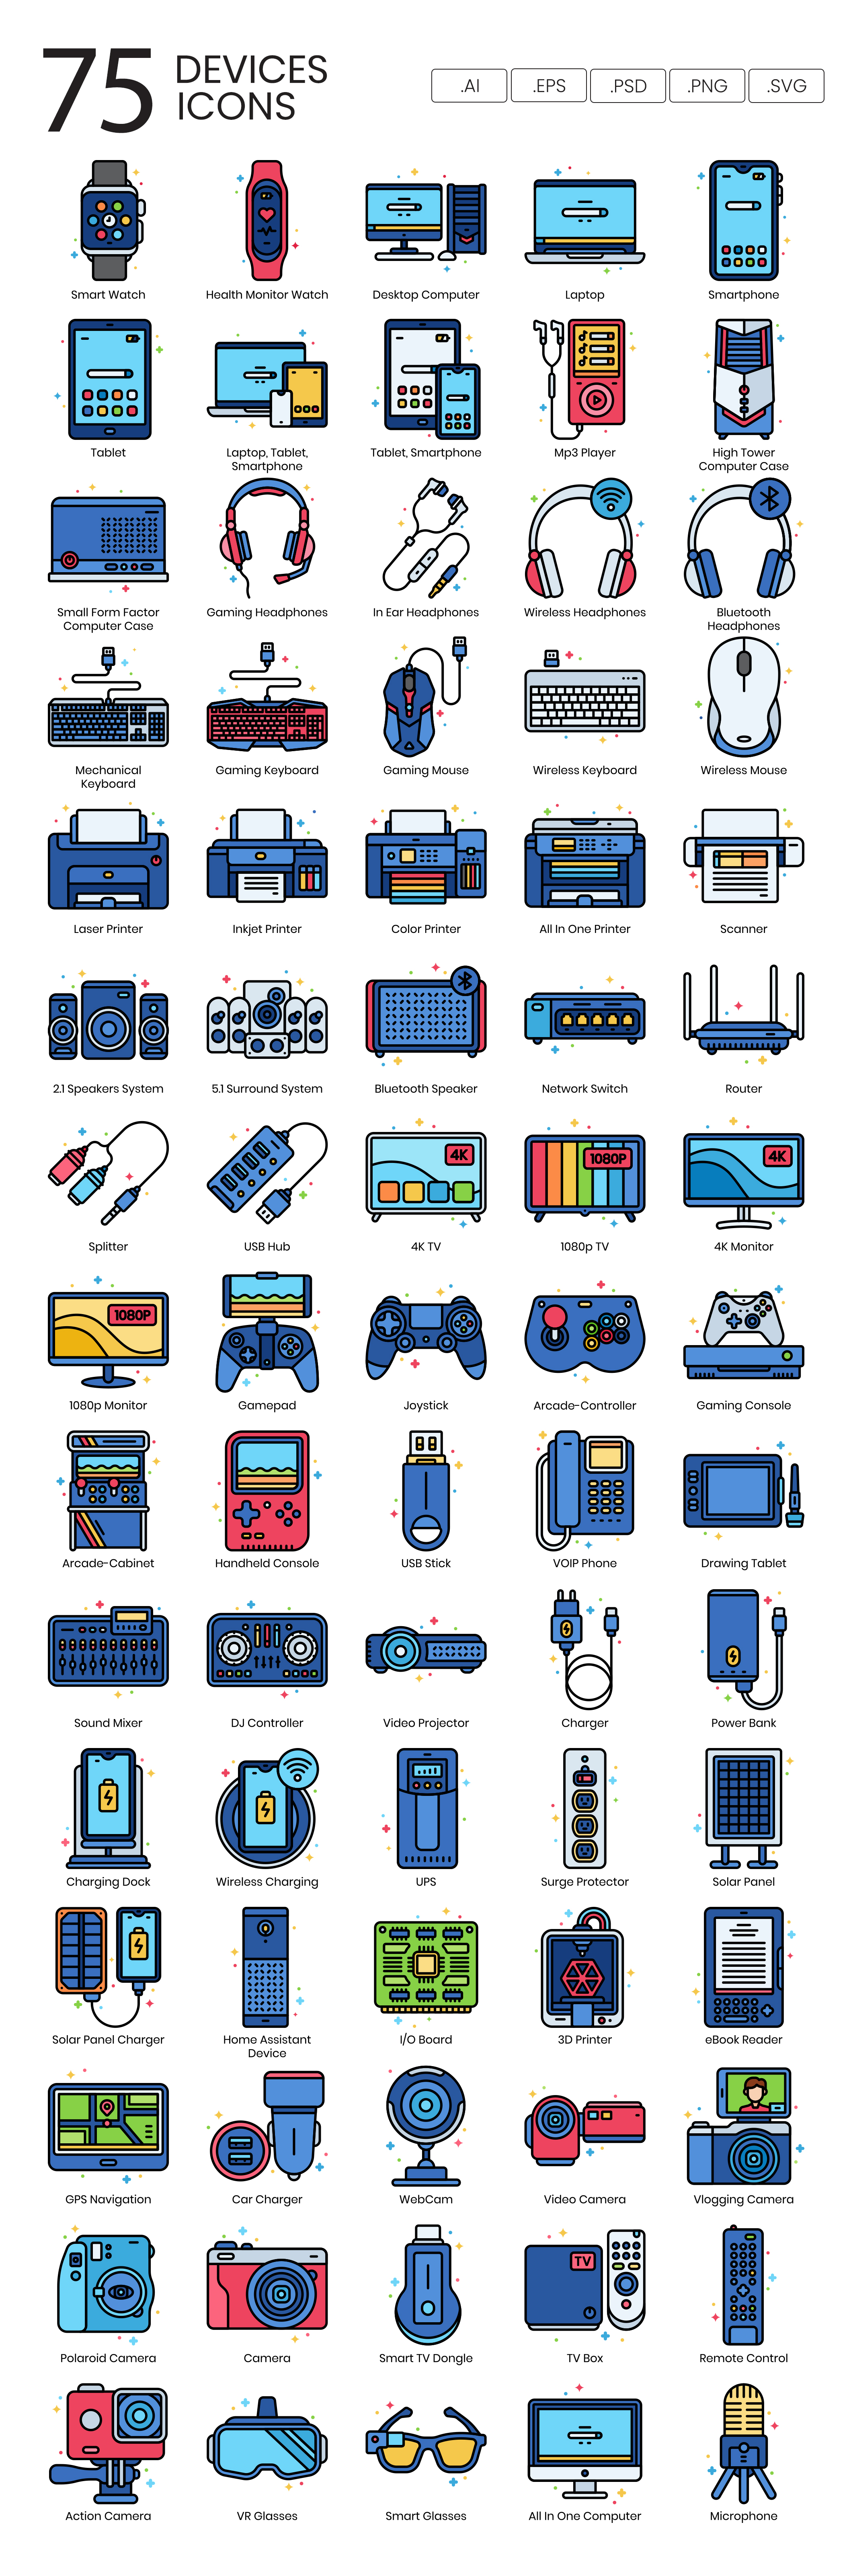 Preview Image for Devices Icon Set